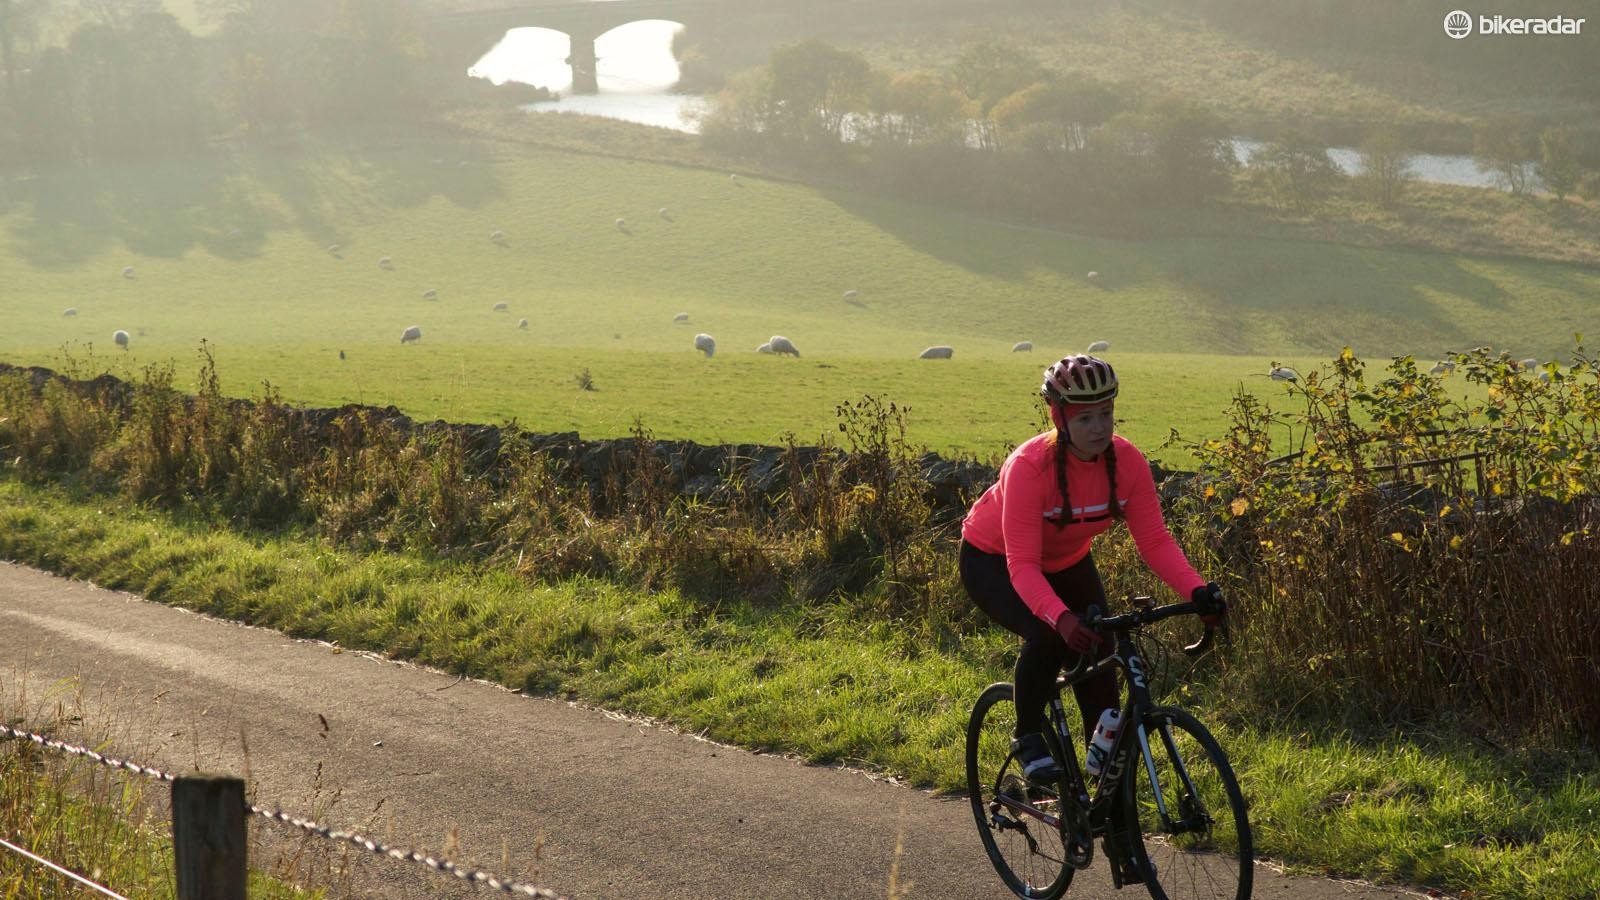 Long steady rides are a great way to burn fat